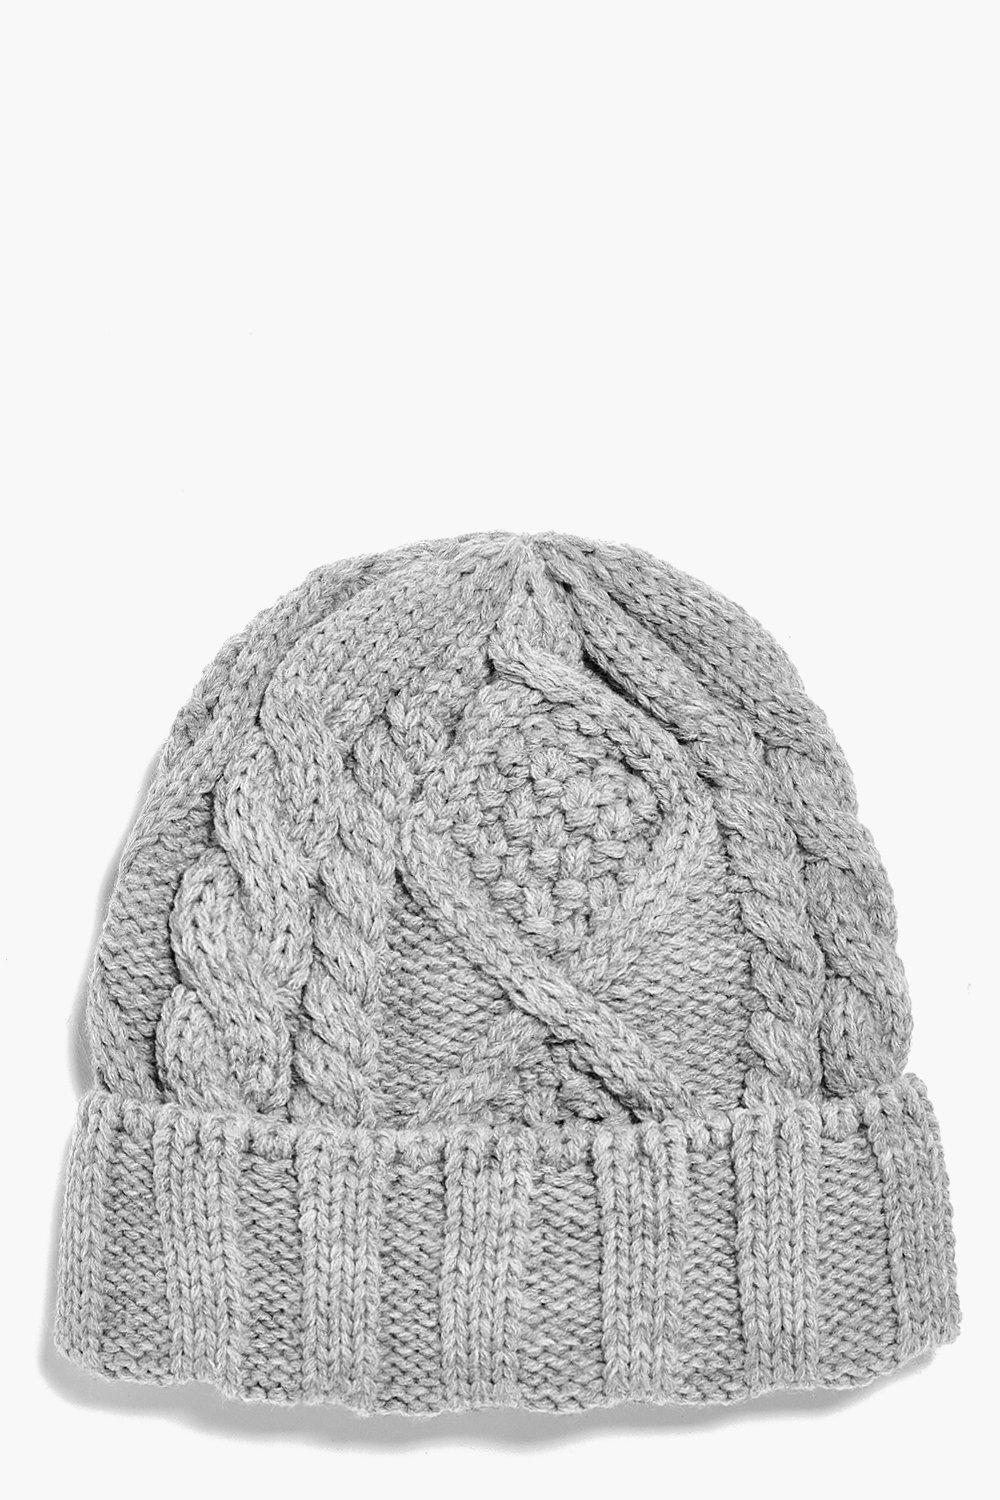 Cable Knit Beanie - grey - Girls Cable Knit Beanie